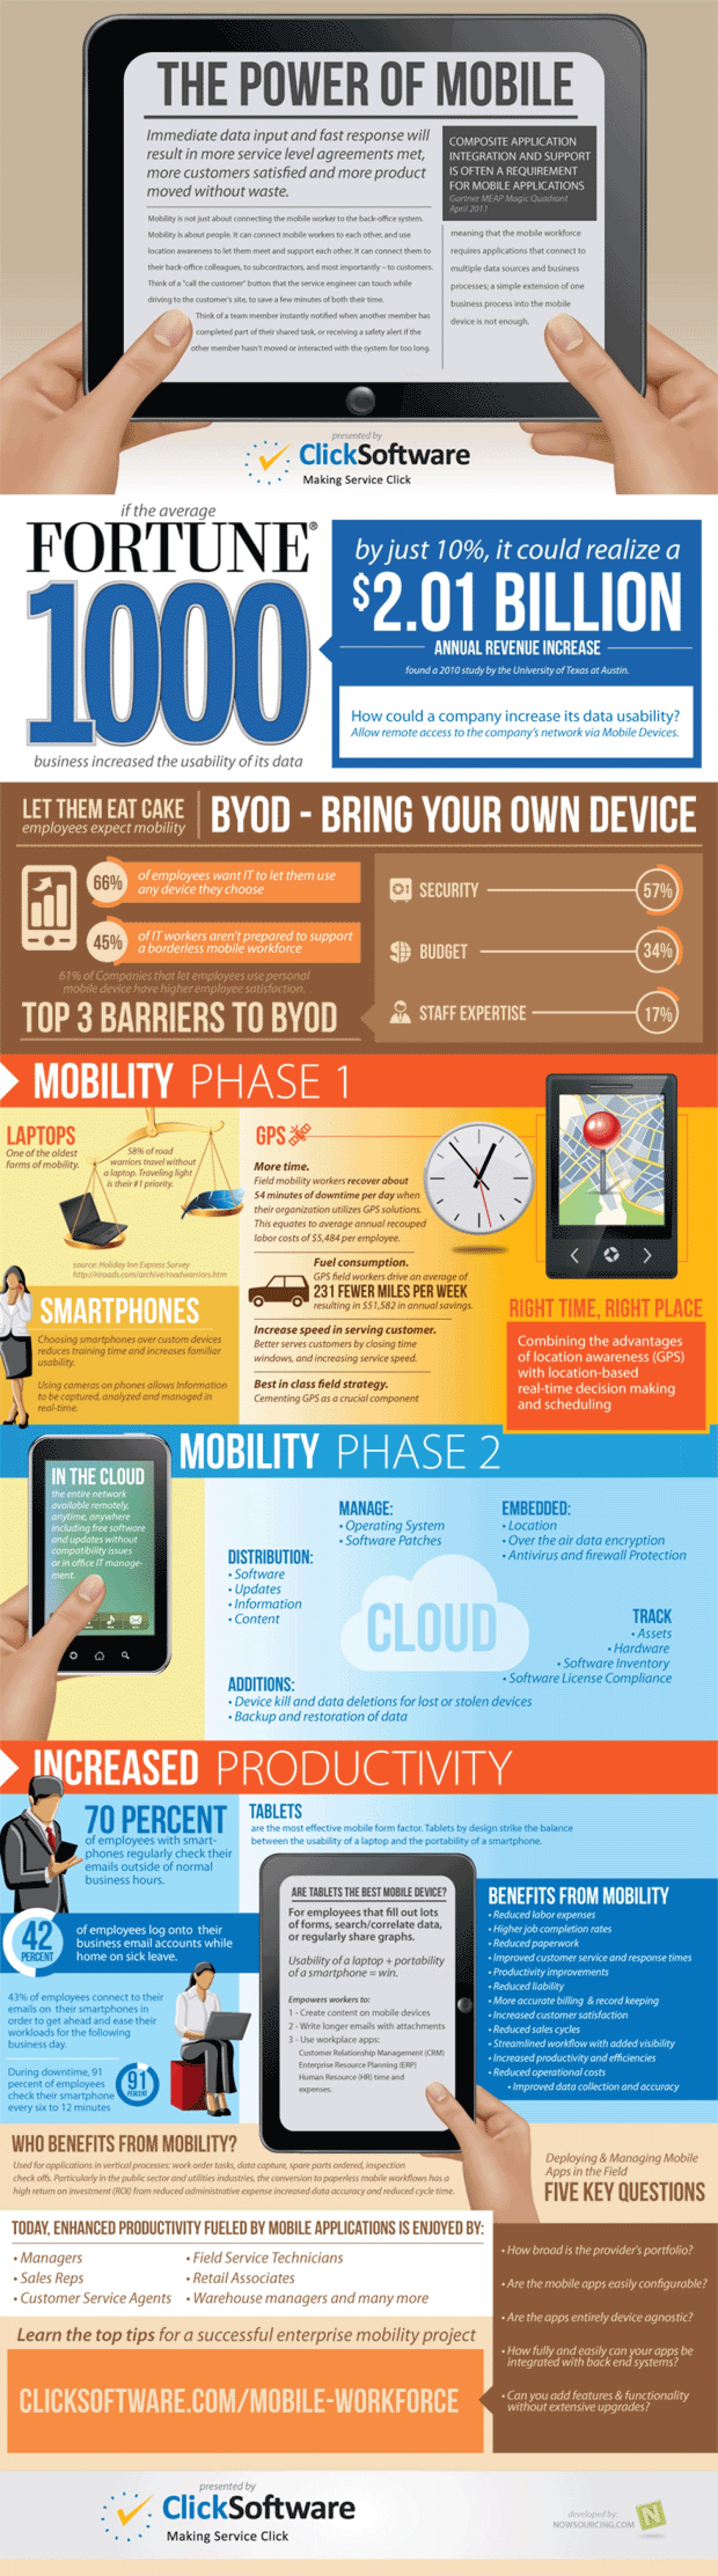 The Power of Mobile Workforce Infographic